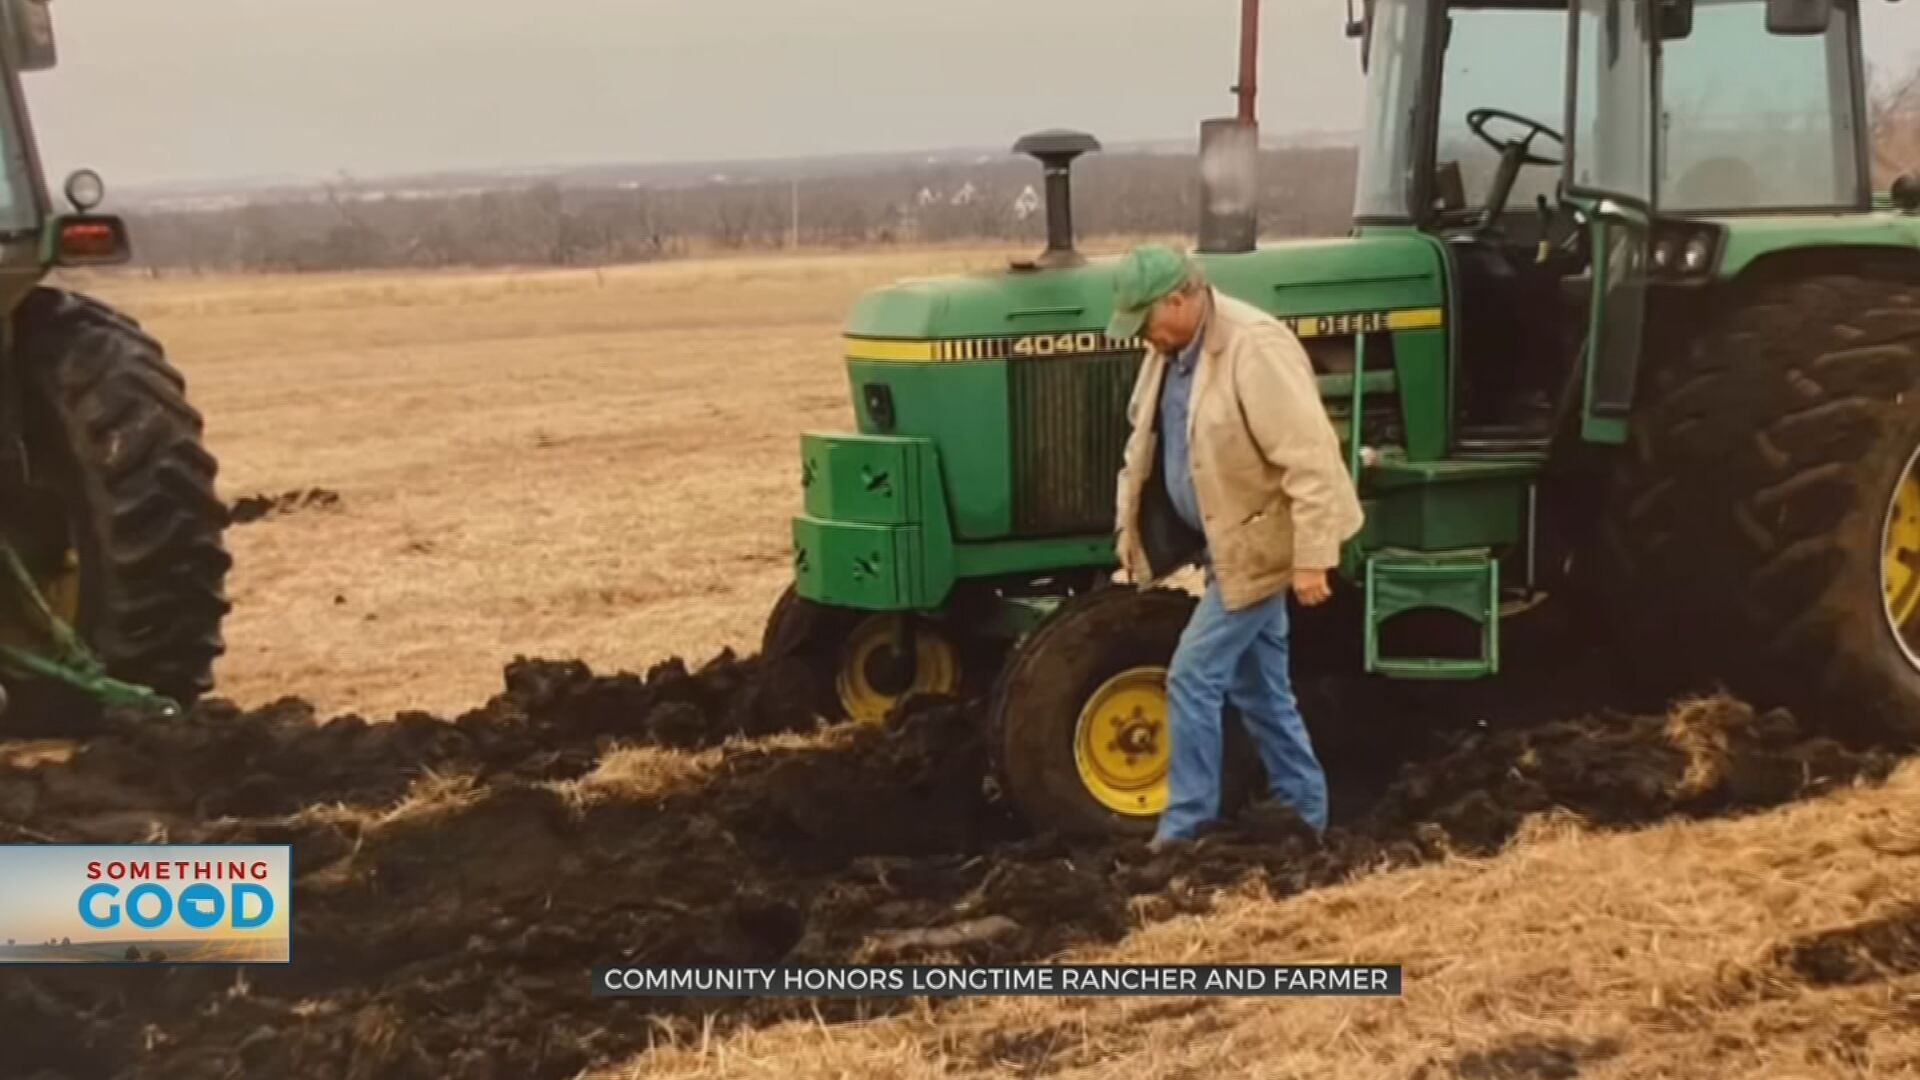 Collinsville Community Honors Longtime Rancher, Farmer With Tractor Procession